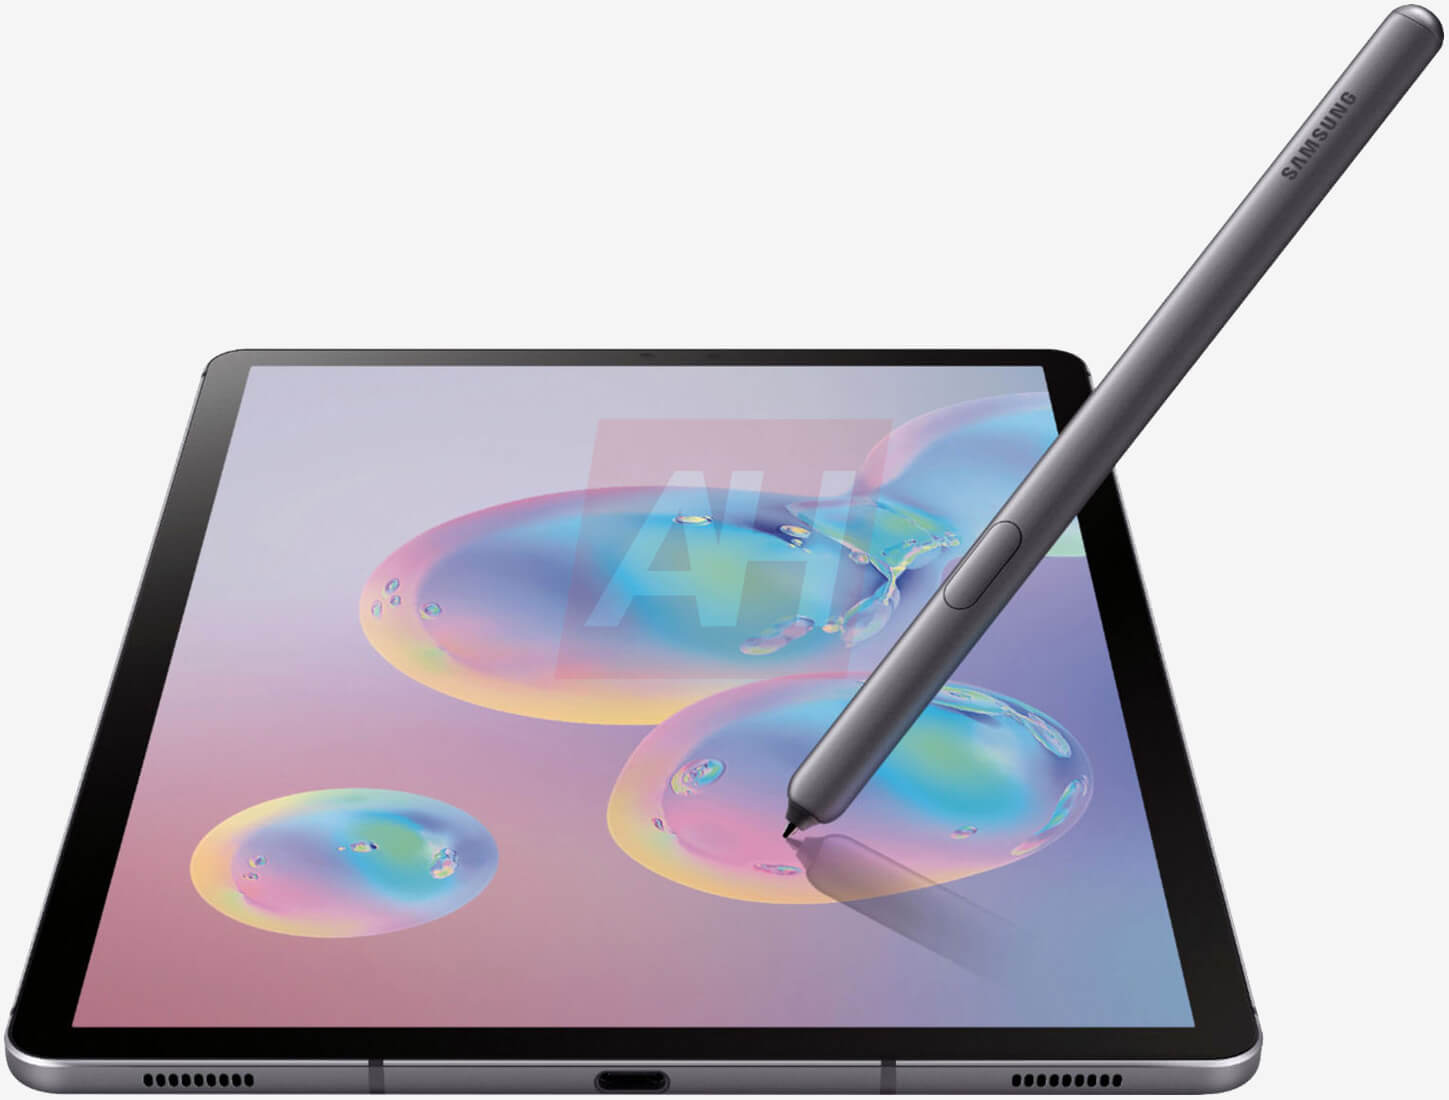 Samsung's Galaxy Tab S6 spied in leaked renders, rear-mounted S Pen confirmed